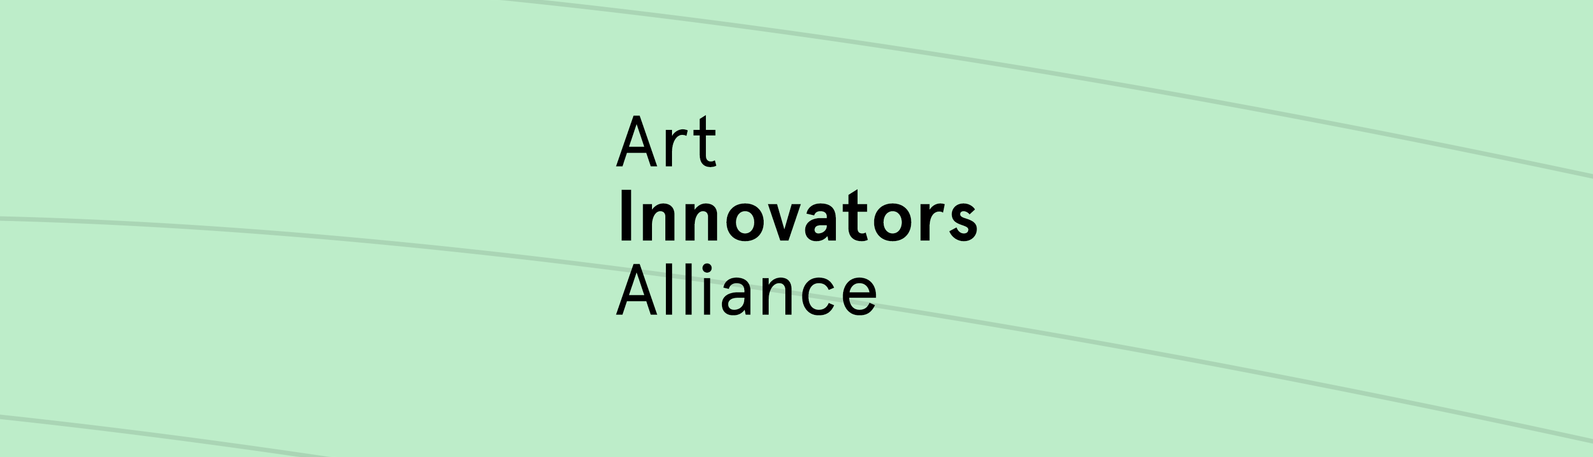 Announcing the Launch of the Art Innovators Alliance